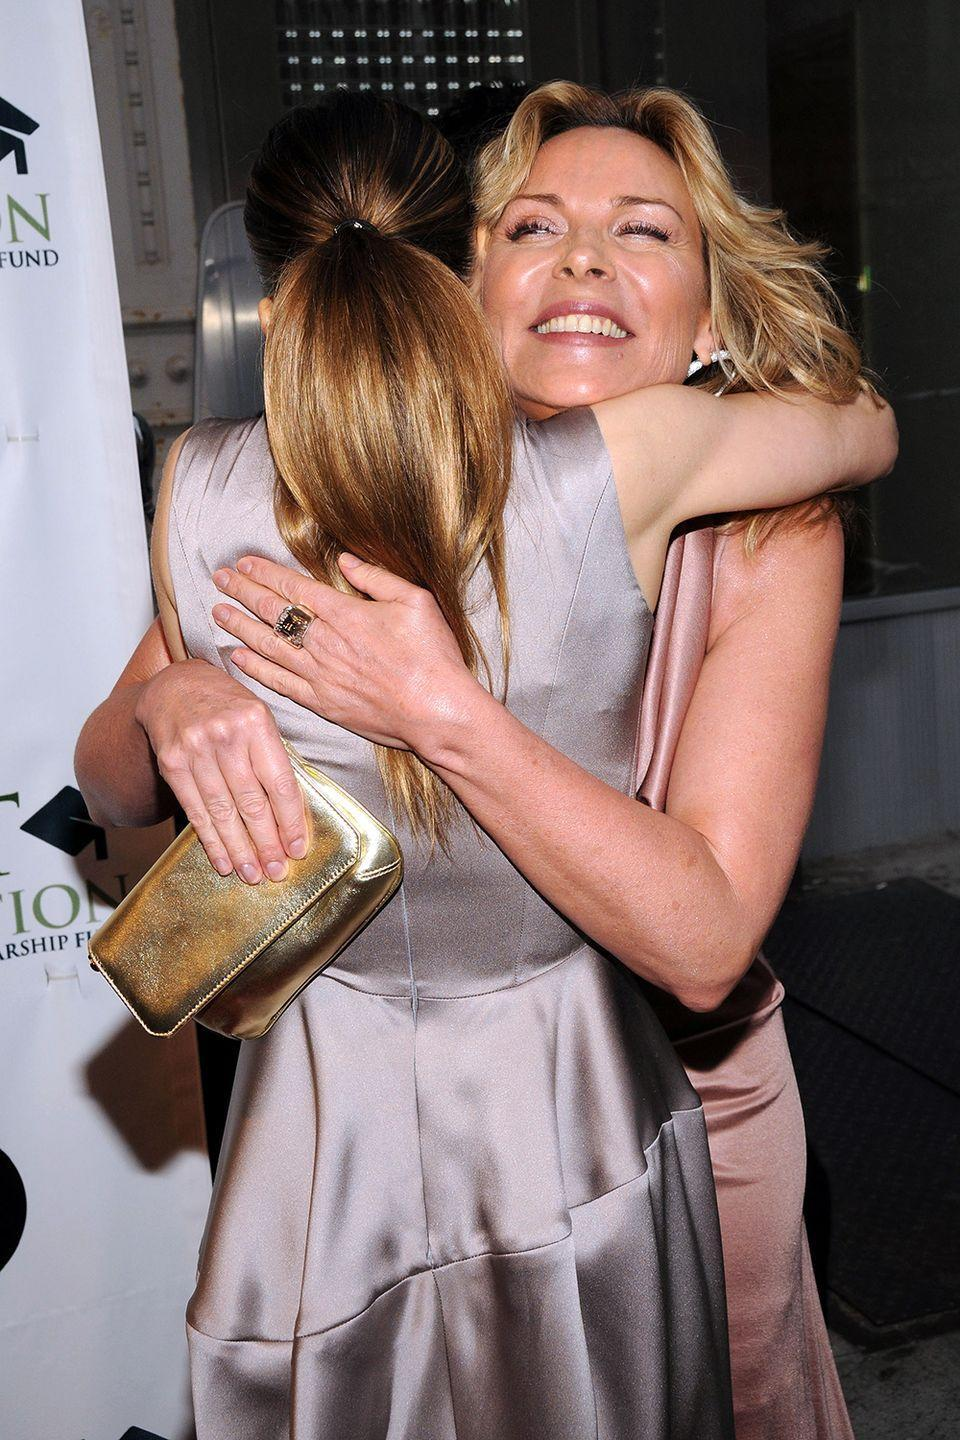 "<p>It's been rumored SJP and Kim Cattrall didn't get along on set, but Parker has confirmed the rumors are completely false. ""It used to really confound me and really upset me, because we were part of a family [with fellow HBO hit] <em>The Sopranos</em>, and nobody ever questioned the relationships of the men on that show, and nobody ever said to them, 'Did you hang out this weekend with each other?' or, 'Did you give each other Christmas presents?'"" Parker tells <a href=""http://www.etonline.com/news/200784_sarah_jessica_parker_talks_kim_cattrall_sex_and_the_city_feud_rumors"" rel=""nofollow noopener"" target=""_blank"" data-ylk=""slk:Entertainment Tonight"" class=""link rapid-noclick-resp"">Entertainment Tonight</a>. ""...It really upset me for a very long time.""</p>"